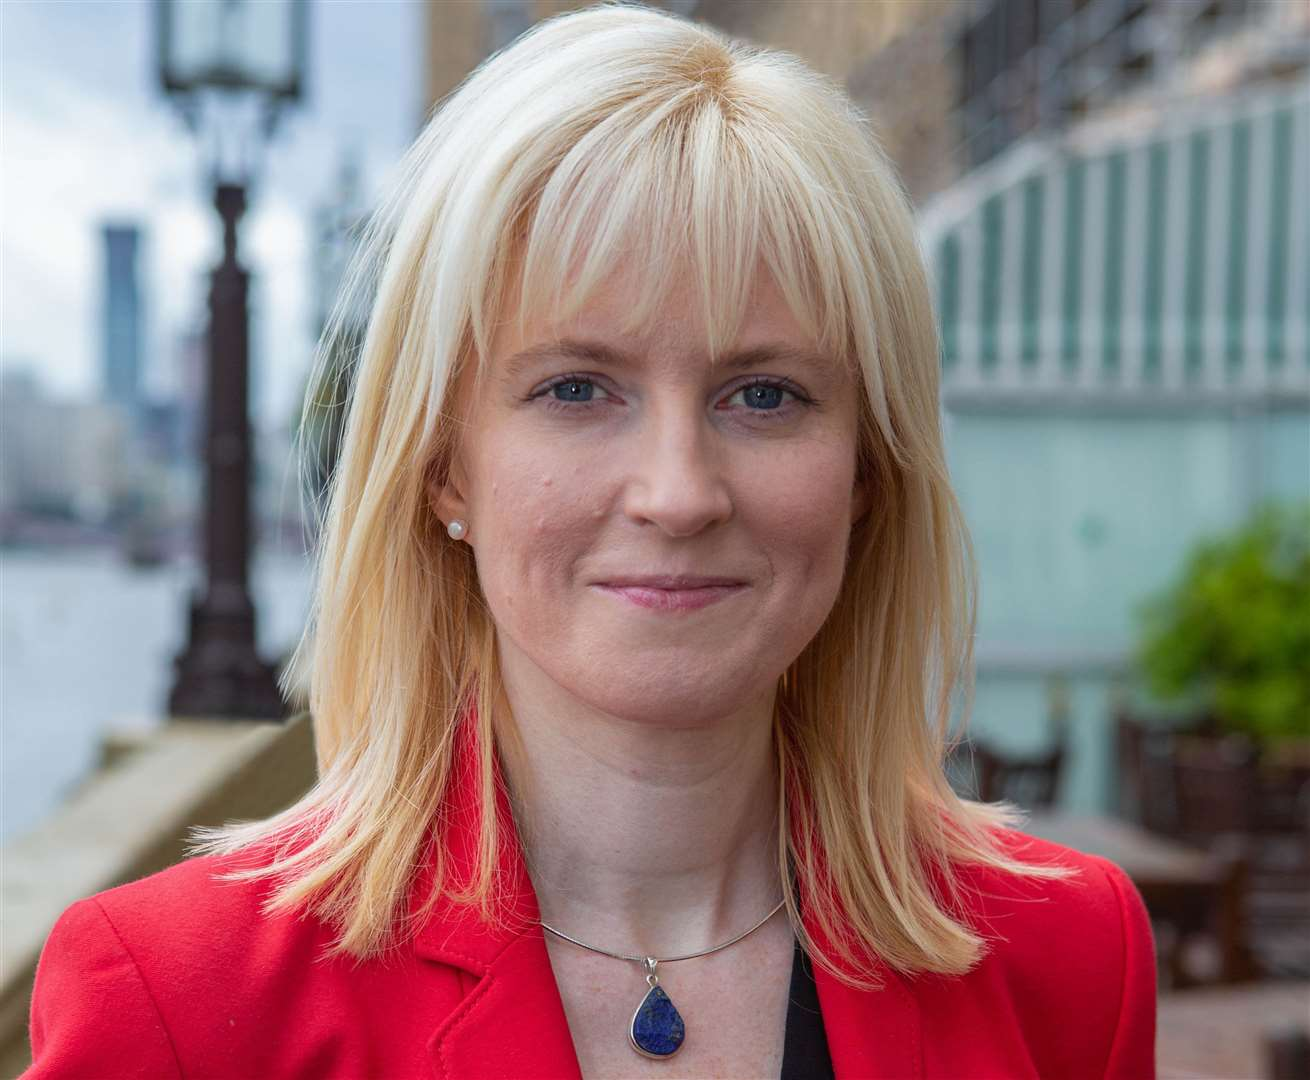 Canterbury MP Rosie Duffield said she would raise concerns about the Kent Police appointment